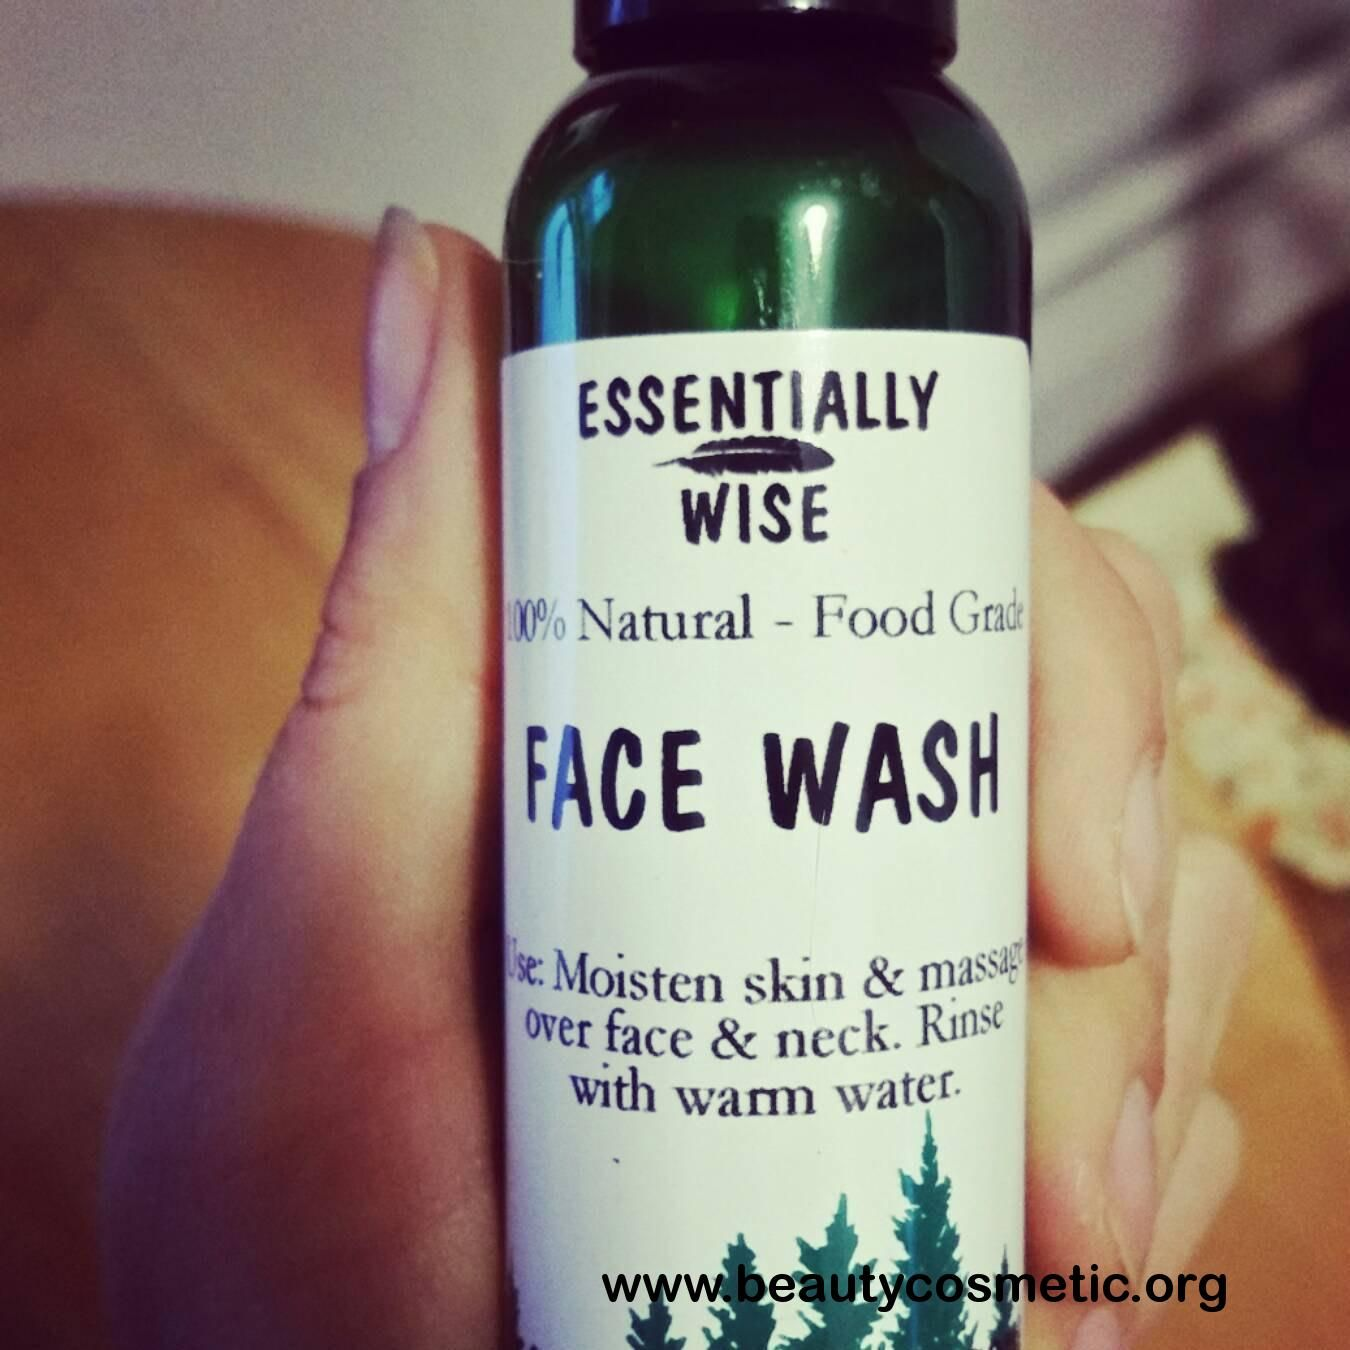 Face Wash - 100% Natural - Food Grade - http://www.beautycosmetic.org/face-wash-100-natural-food-grade.html